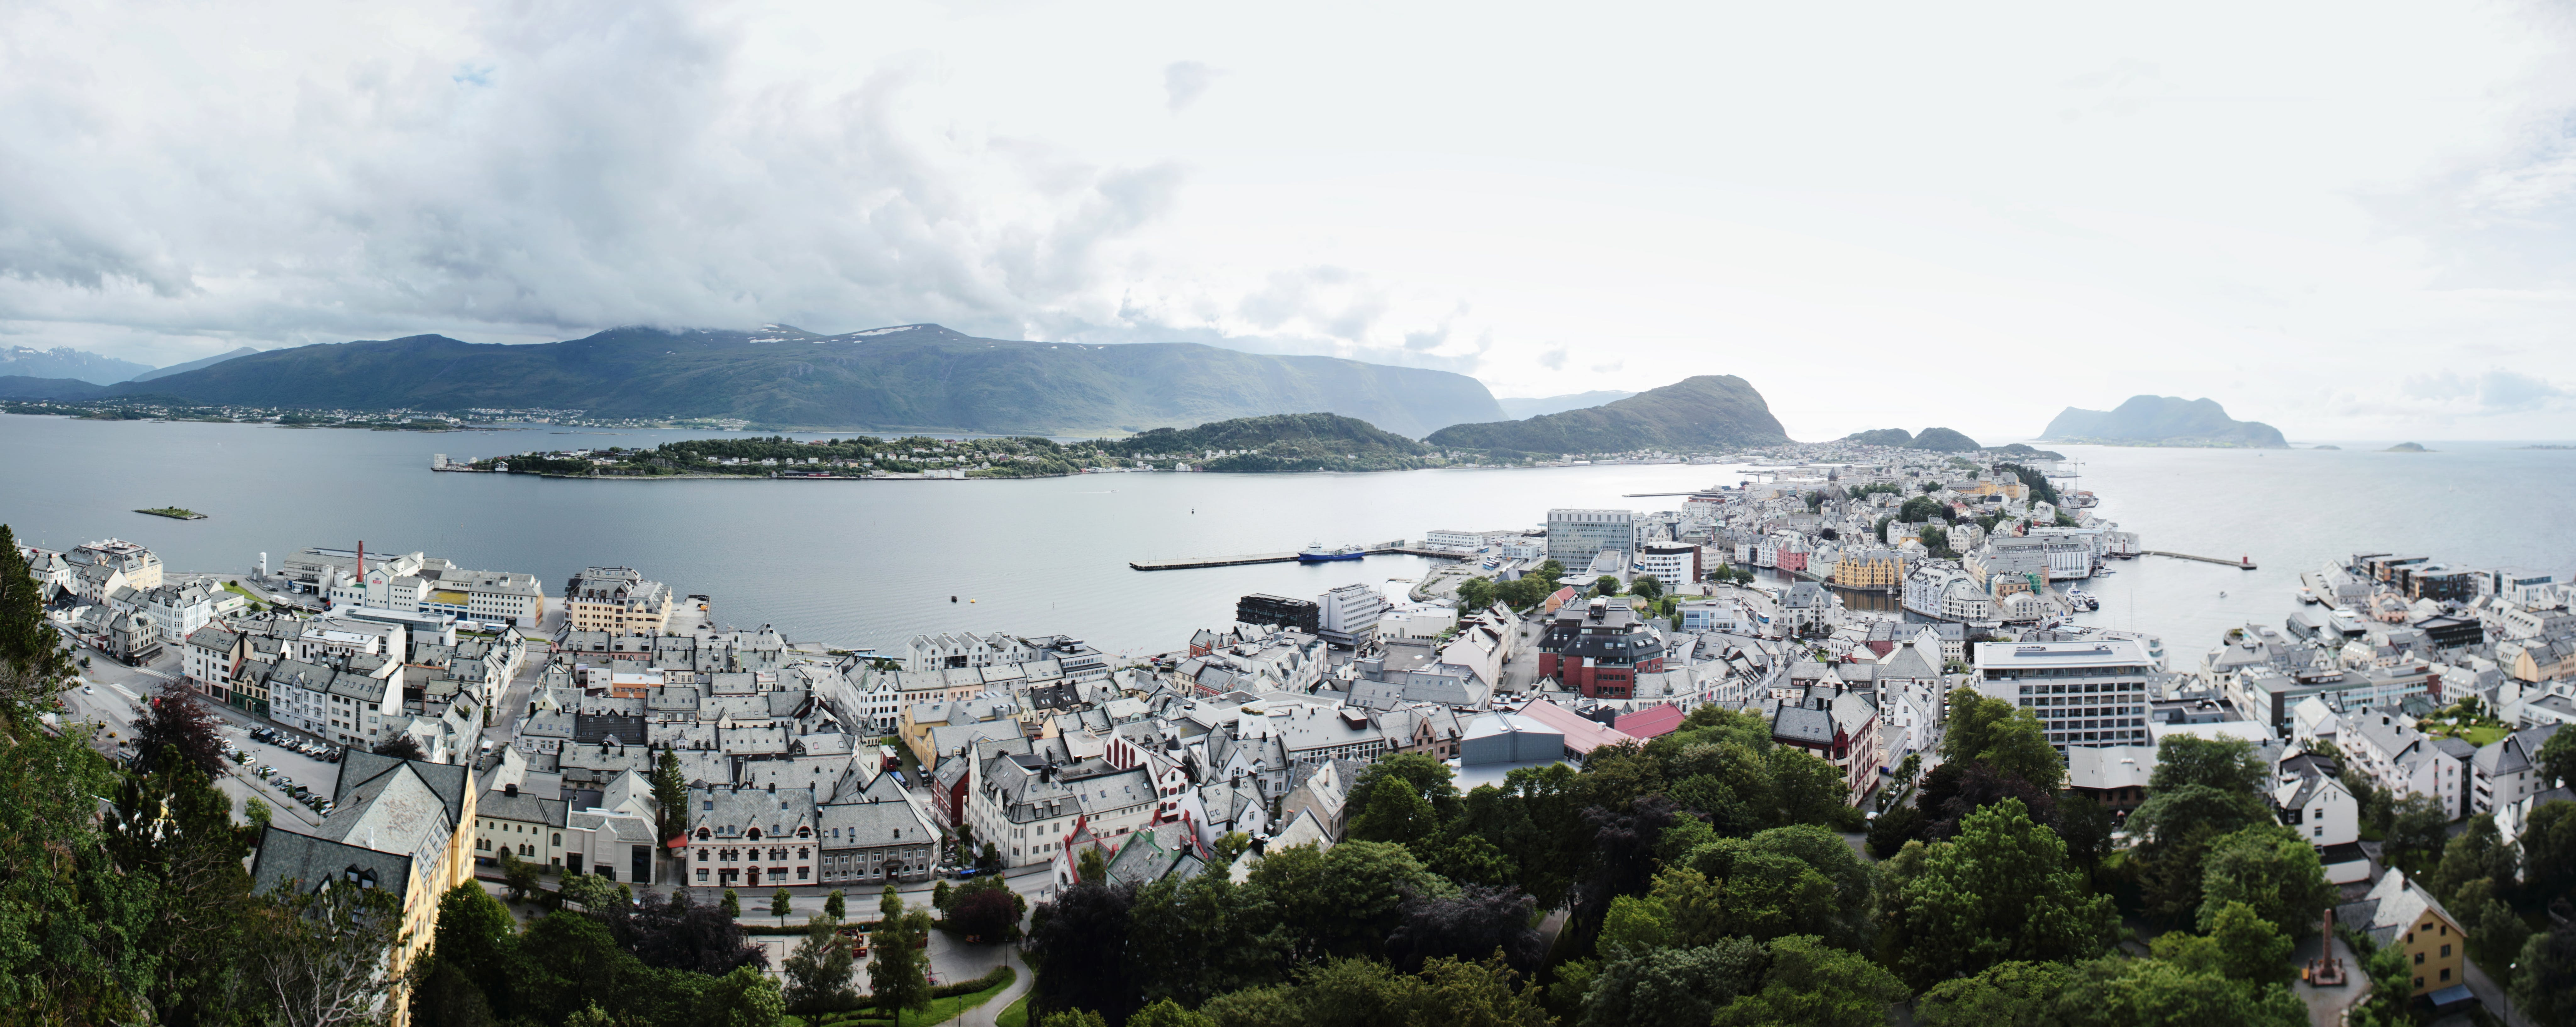 Free stock photo of architecture, city, fjord, norway